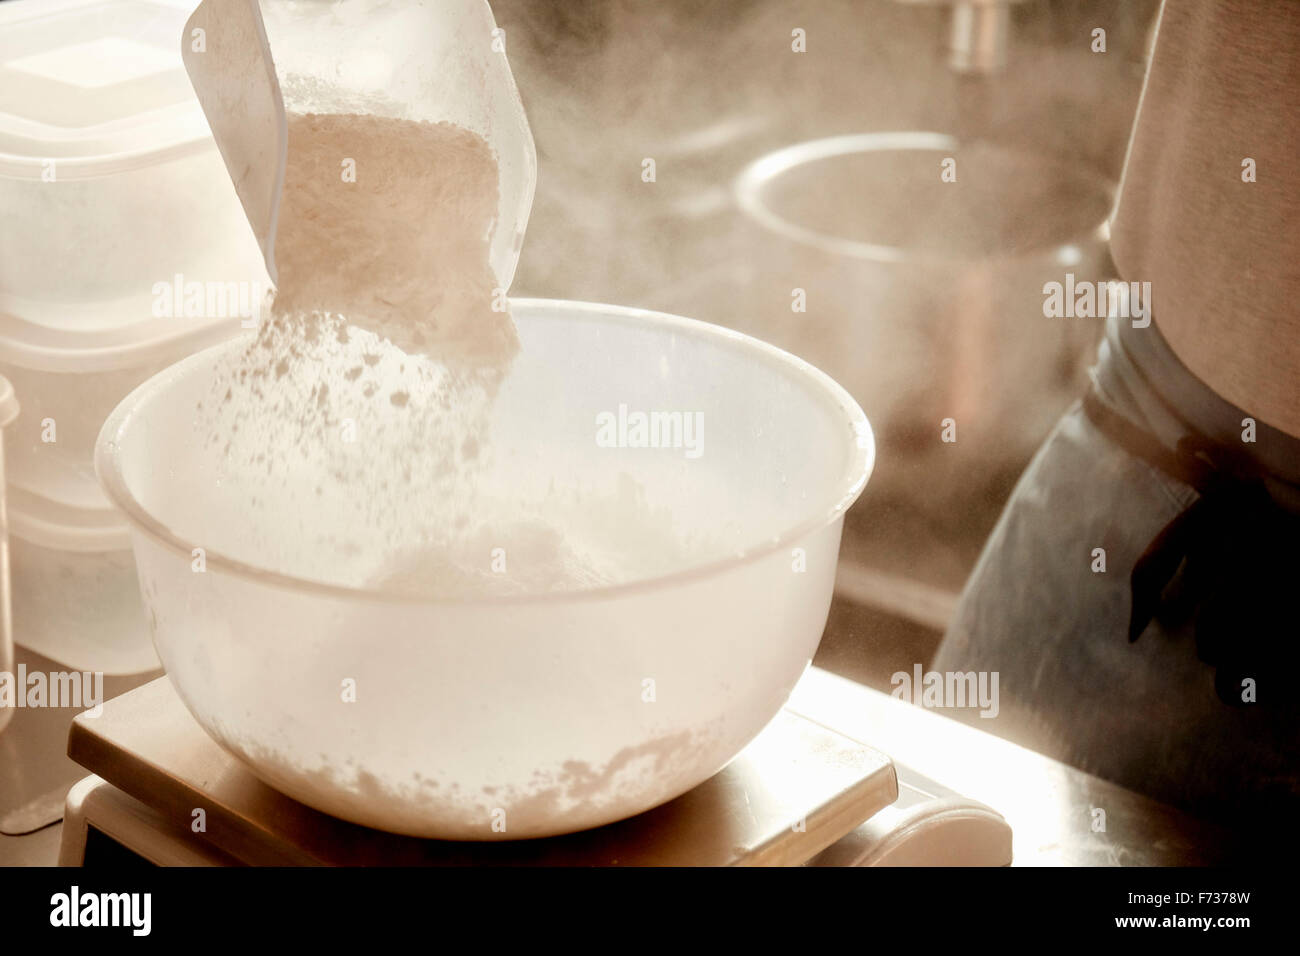 A baker preparing ingredients, using a measuring scale and pouring flour into a bowl. - Stock Image